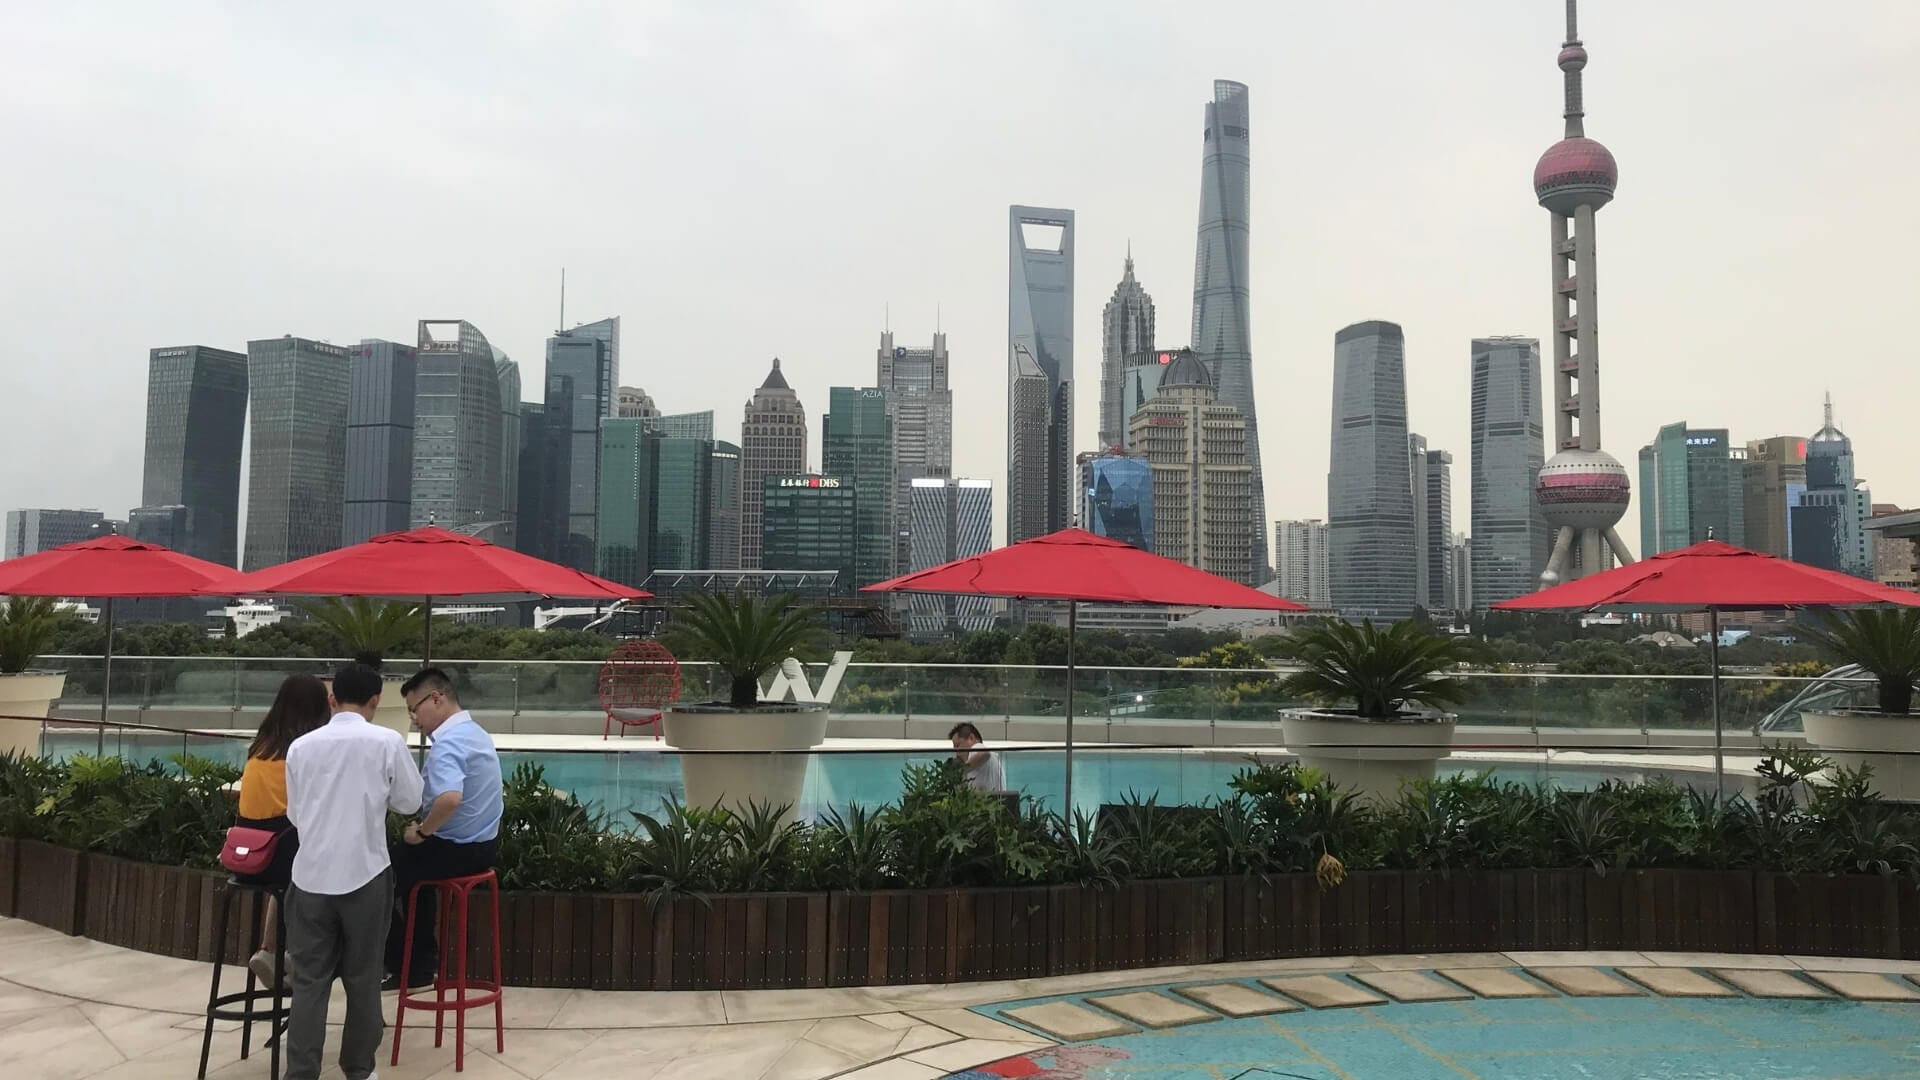 People are having a drink at a rooftop bar with a pool and a view of the skyline of Shanghai.